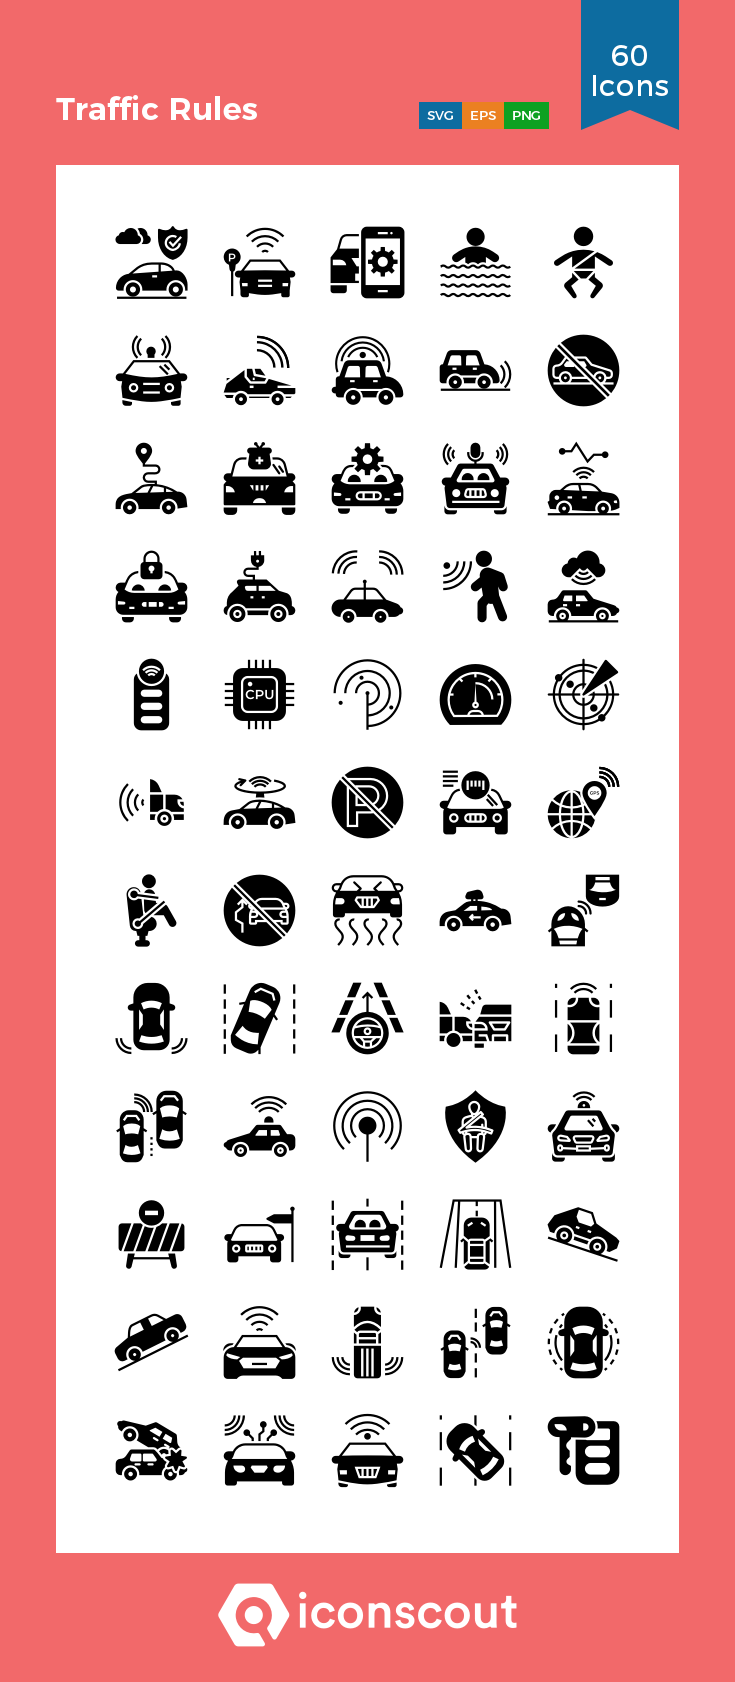 Download Traffic Rules Icon Pack Available In Svg Png Eps Ai Icon Fonts Icon Pack Icon Car Icons